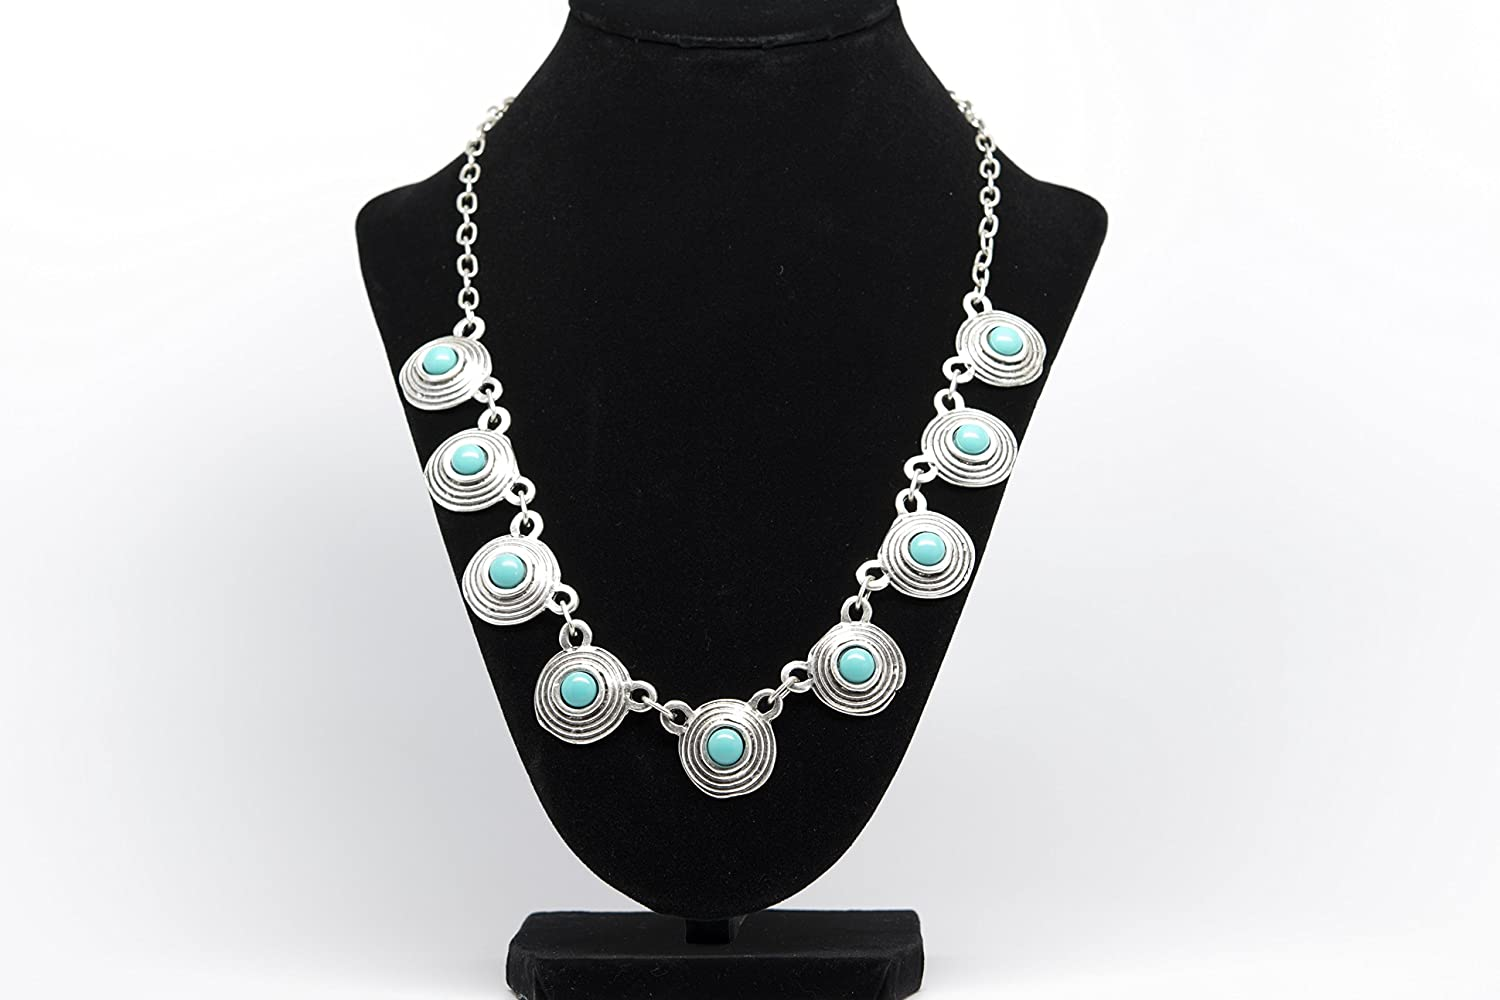 Orti Jewelry Turquoise Stone Antique Silver Plated Vintage Necklace with Adjustable Length